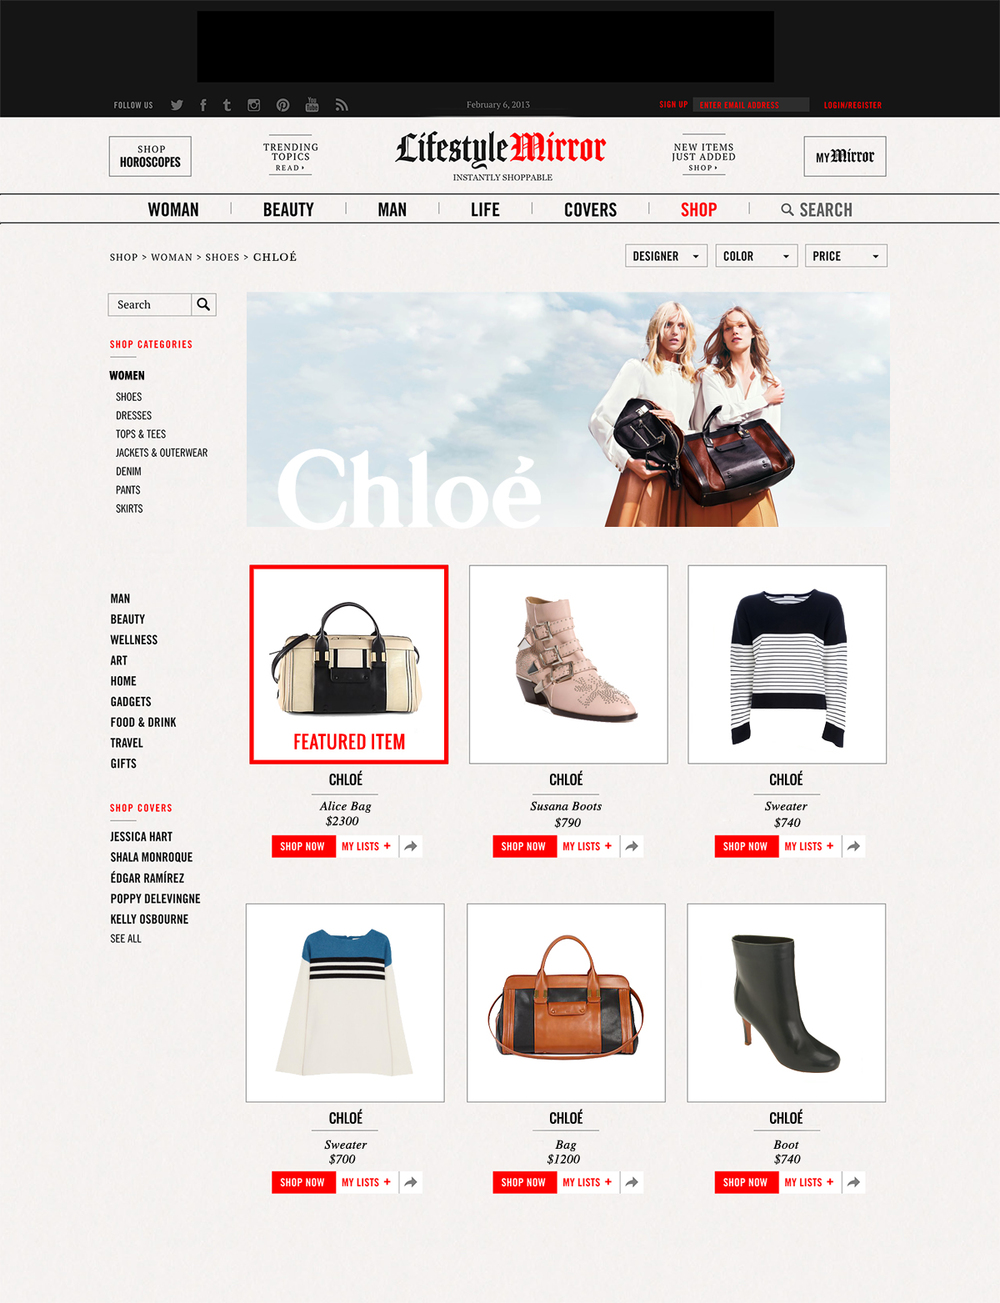 CHLOE Shopping Boutique.jpg